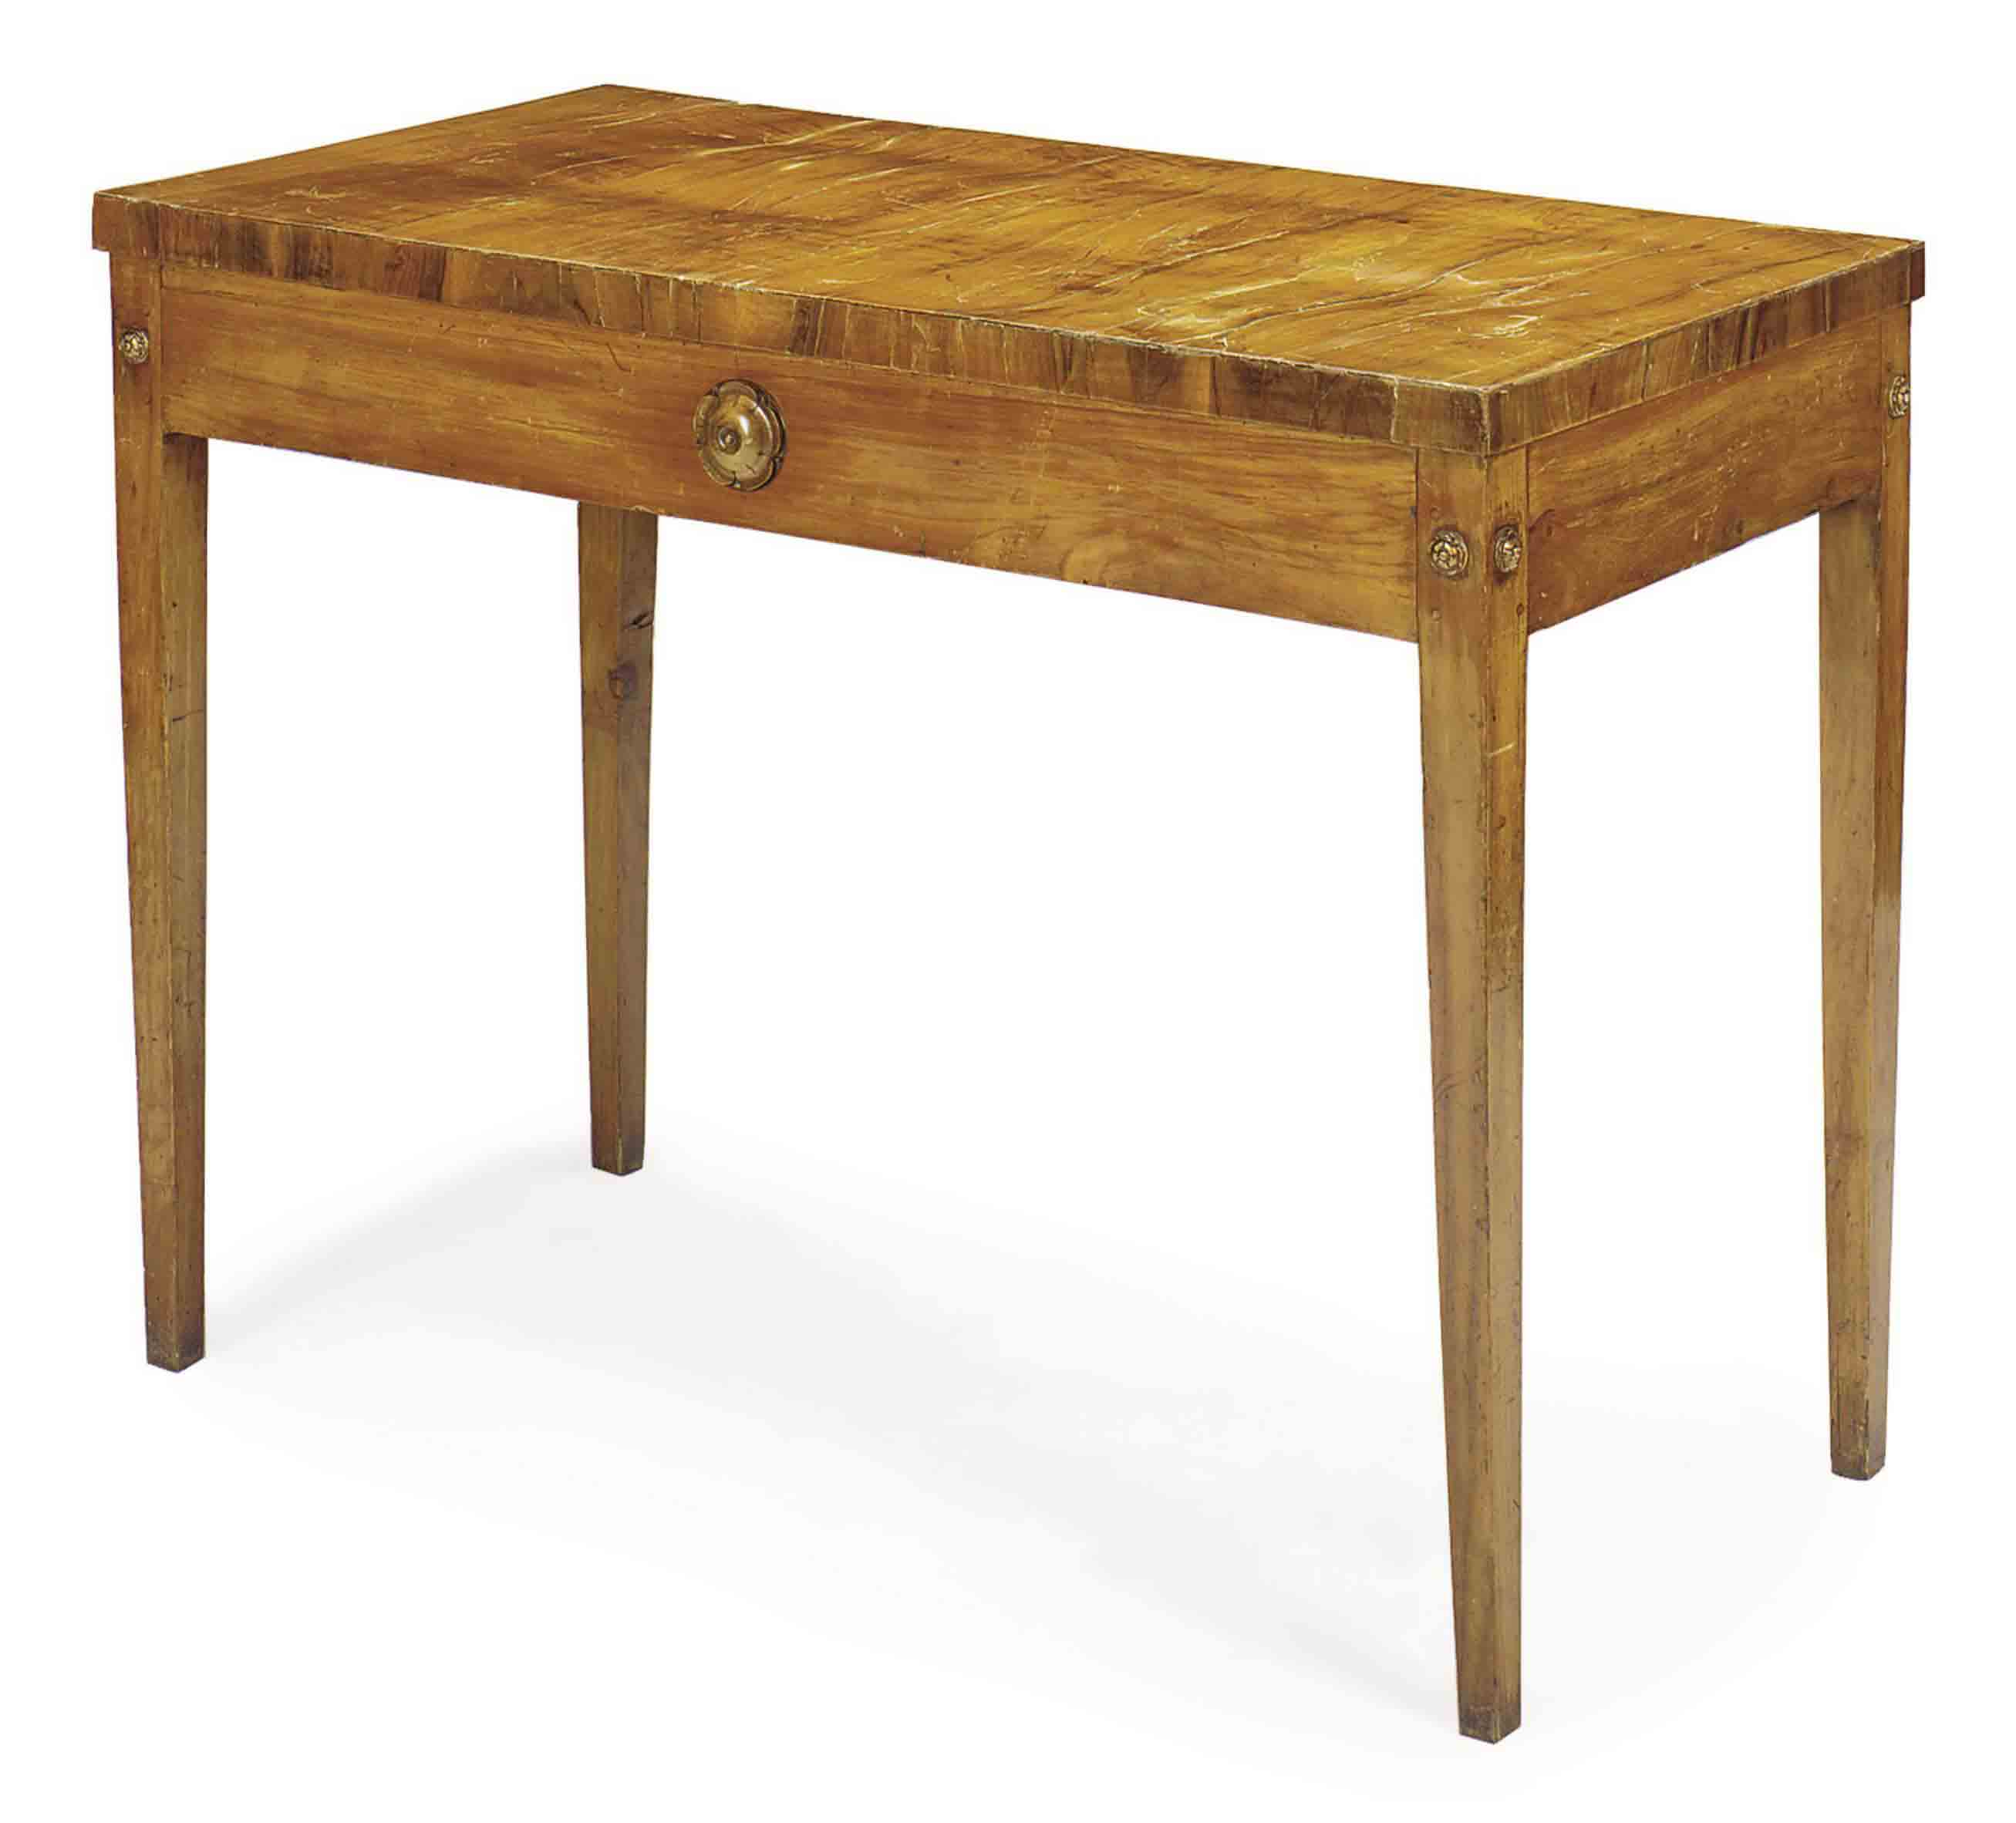 AN ITALIAN OLIVEWOOD TABLE,